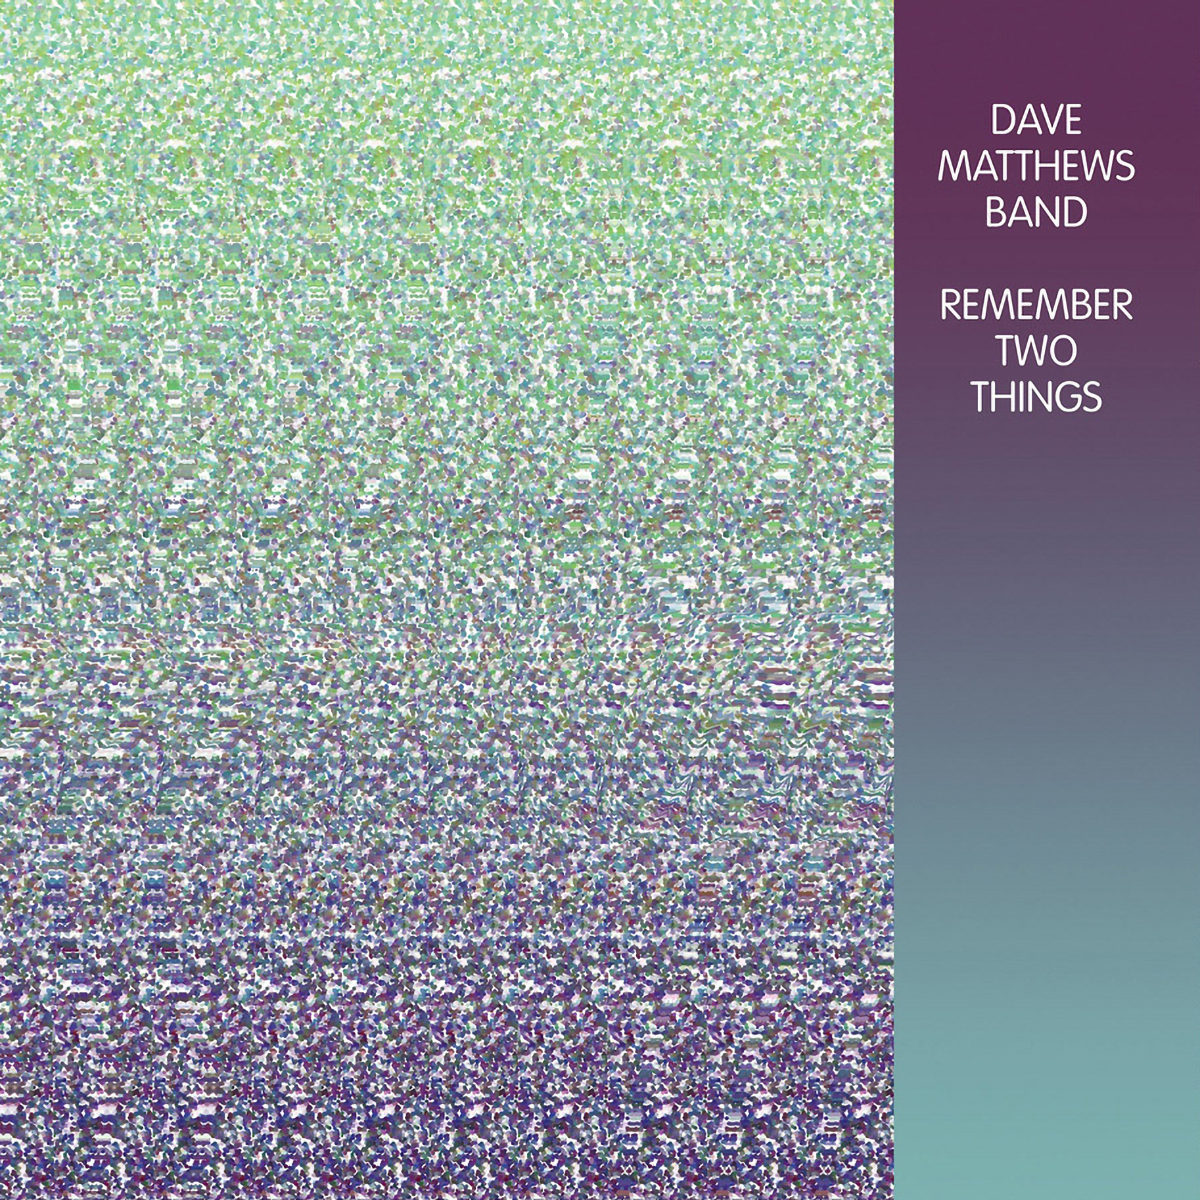 Remember Two Things 2-LP